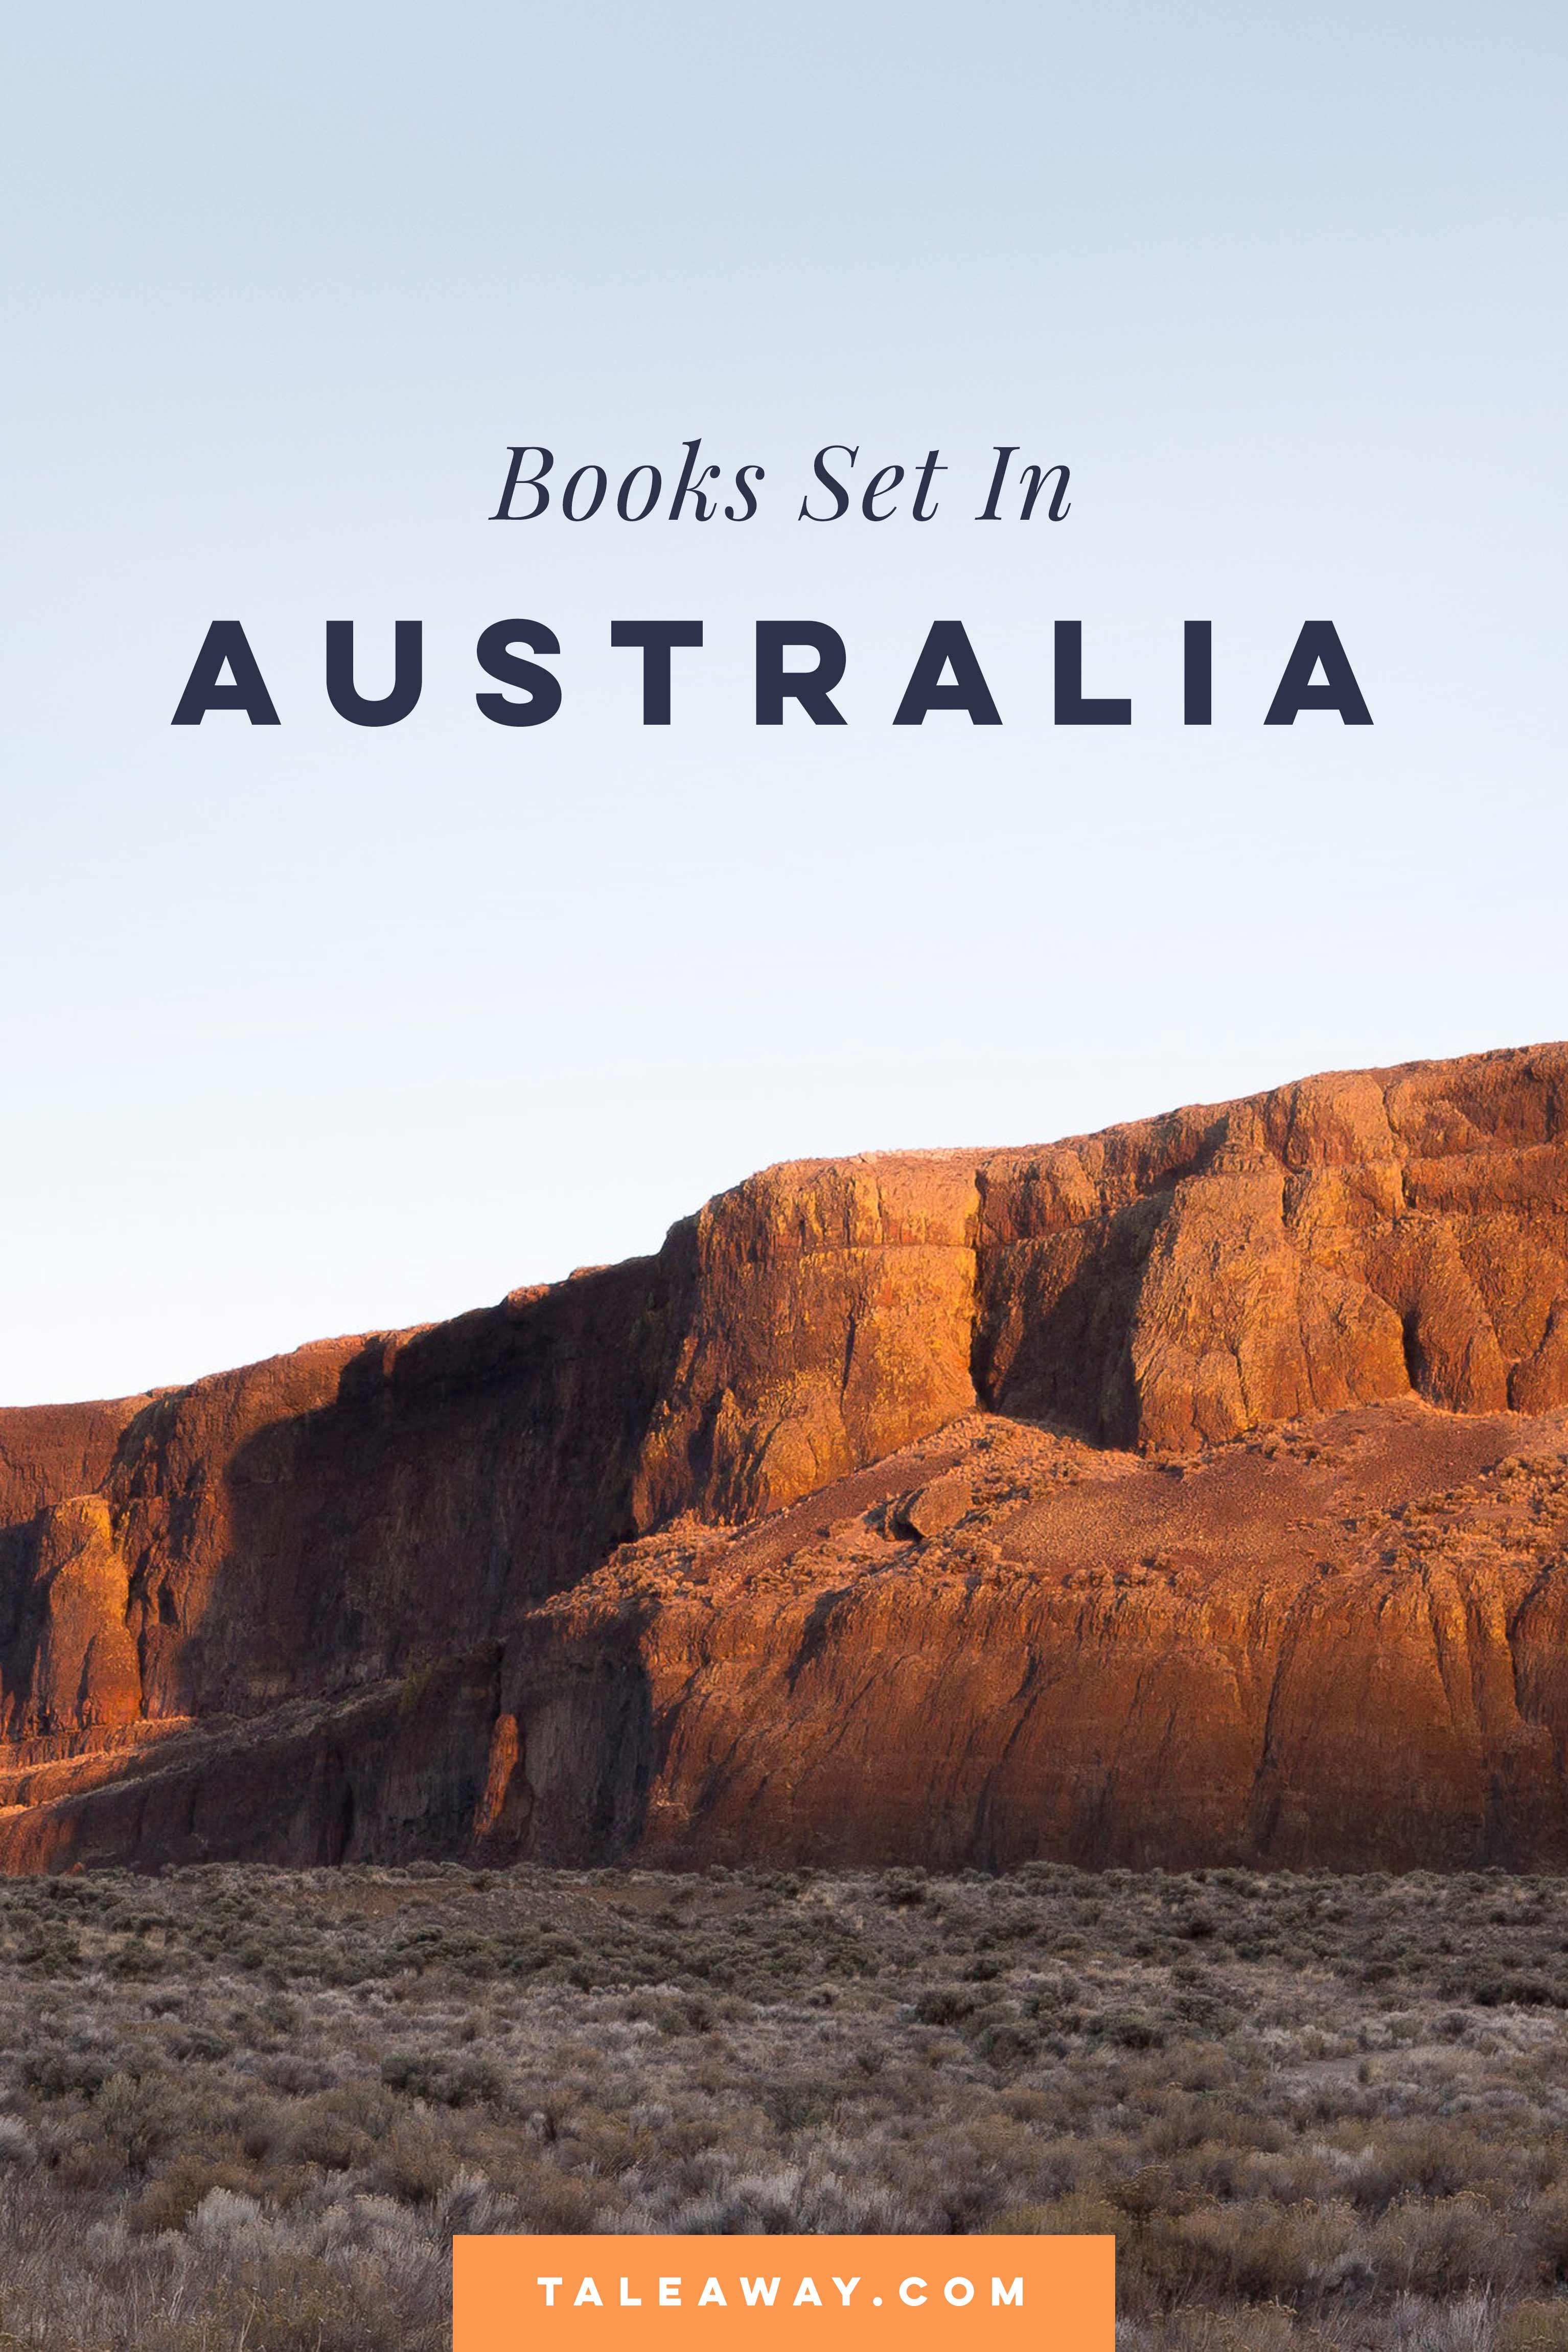 Books Set In Australia - For more books visit www.taleway.com to find books set around the world. Ideas for those who like to travel, both in life and in fiction. australian books, books and travel, travel reads, reading list, books around the world, books to read, books set in different countries, australia